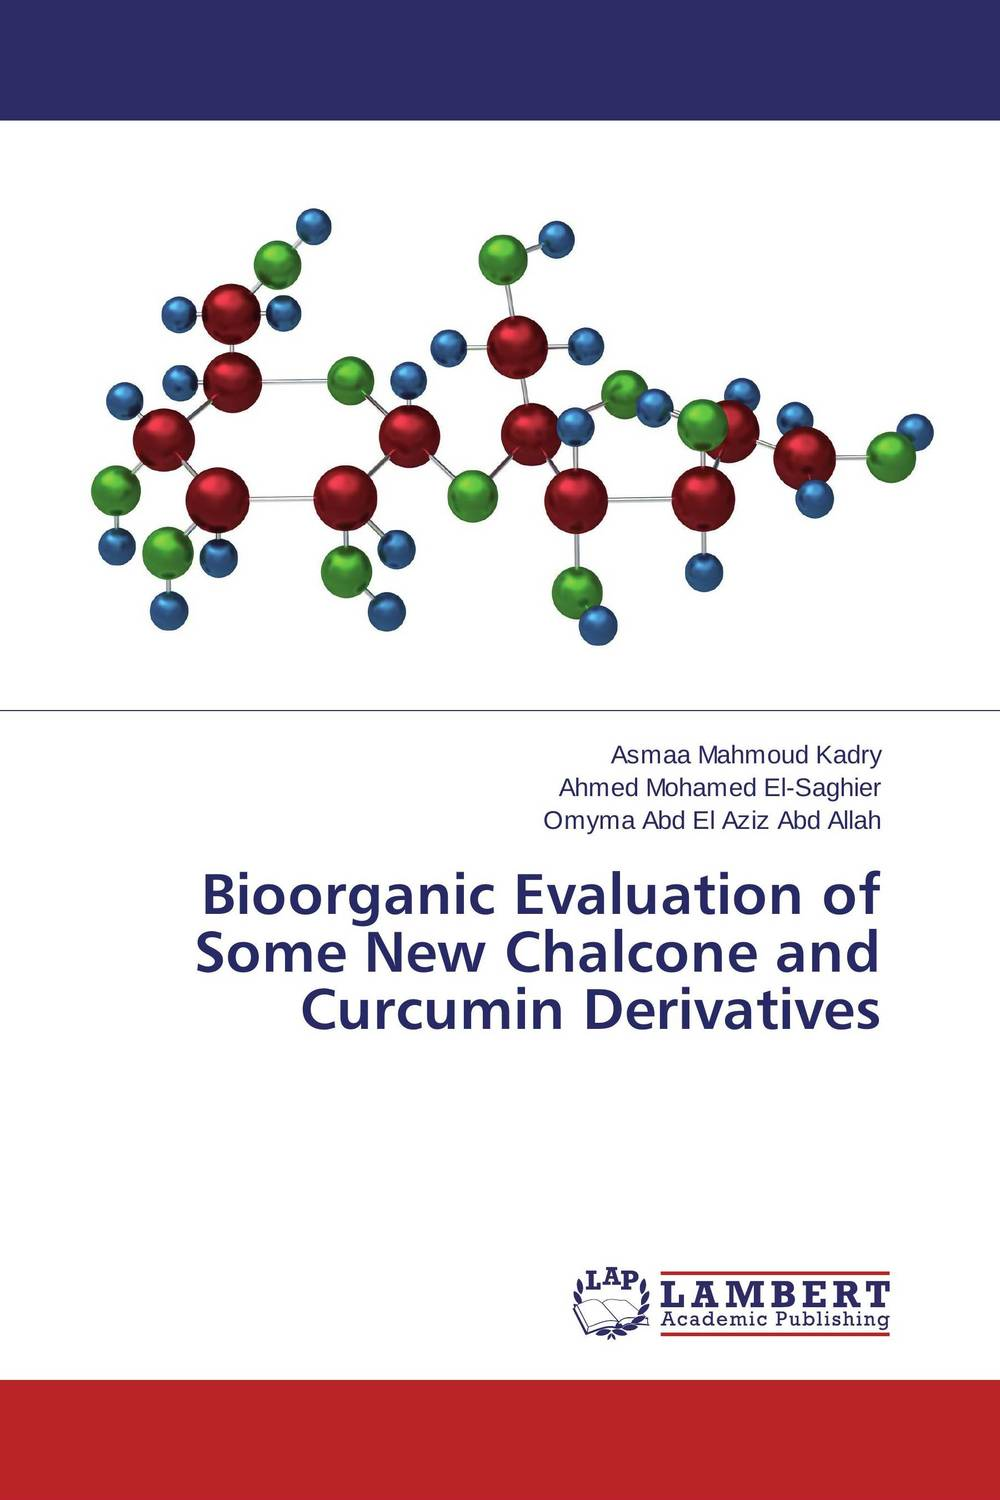 Bioorganic Evaluation of Some New Chalcone and Curcumin Derivatives synthesis and reactions of some new s triazole derivatives